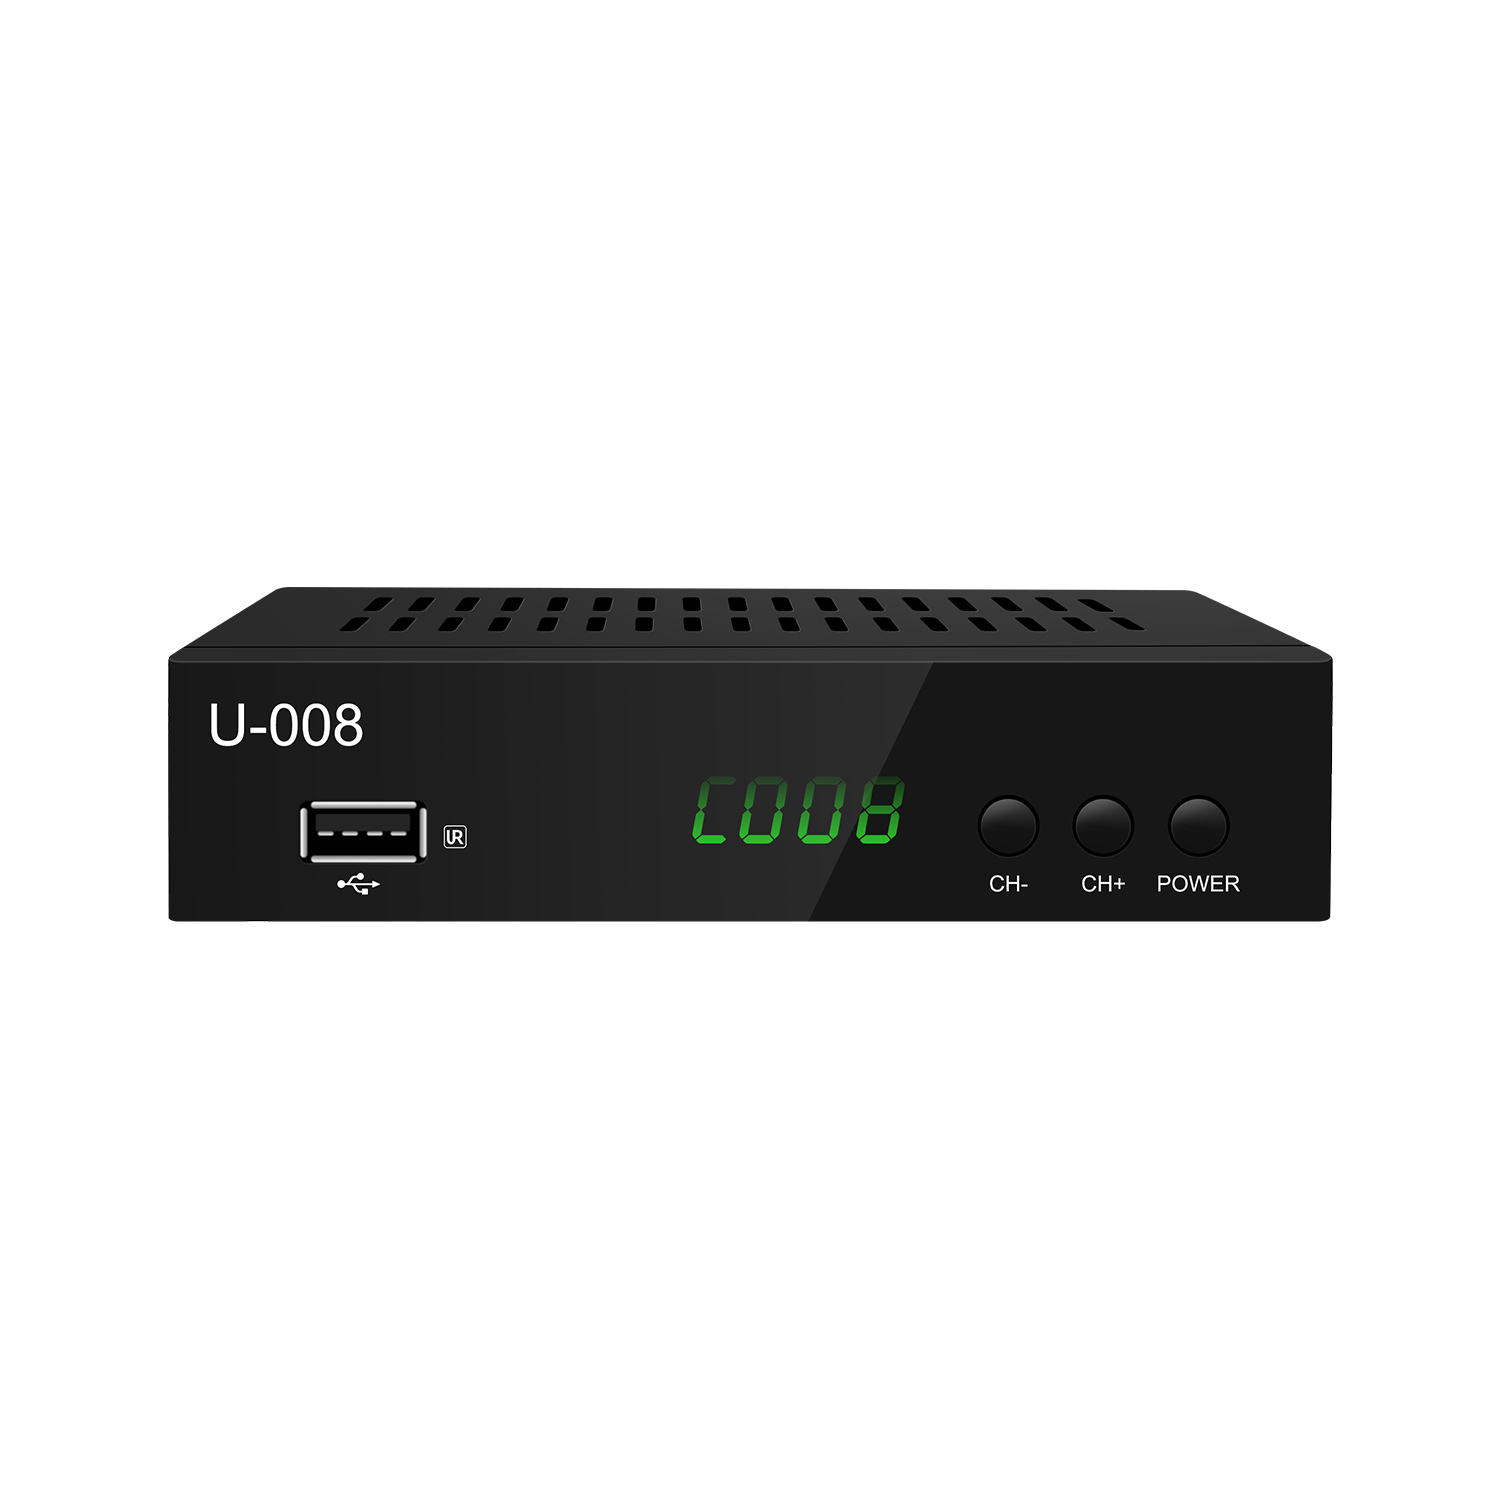 Junuo Wholesale Price ATSC Set Top Box Mstar 7802 1080P HD Decoder PVR Function Digital TV Receiver For Canada USA Mexico